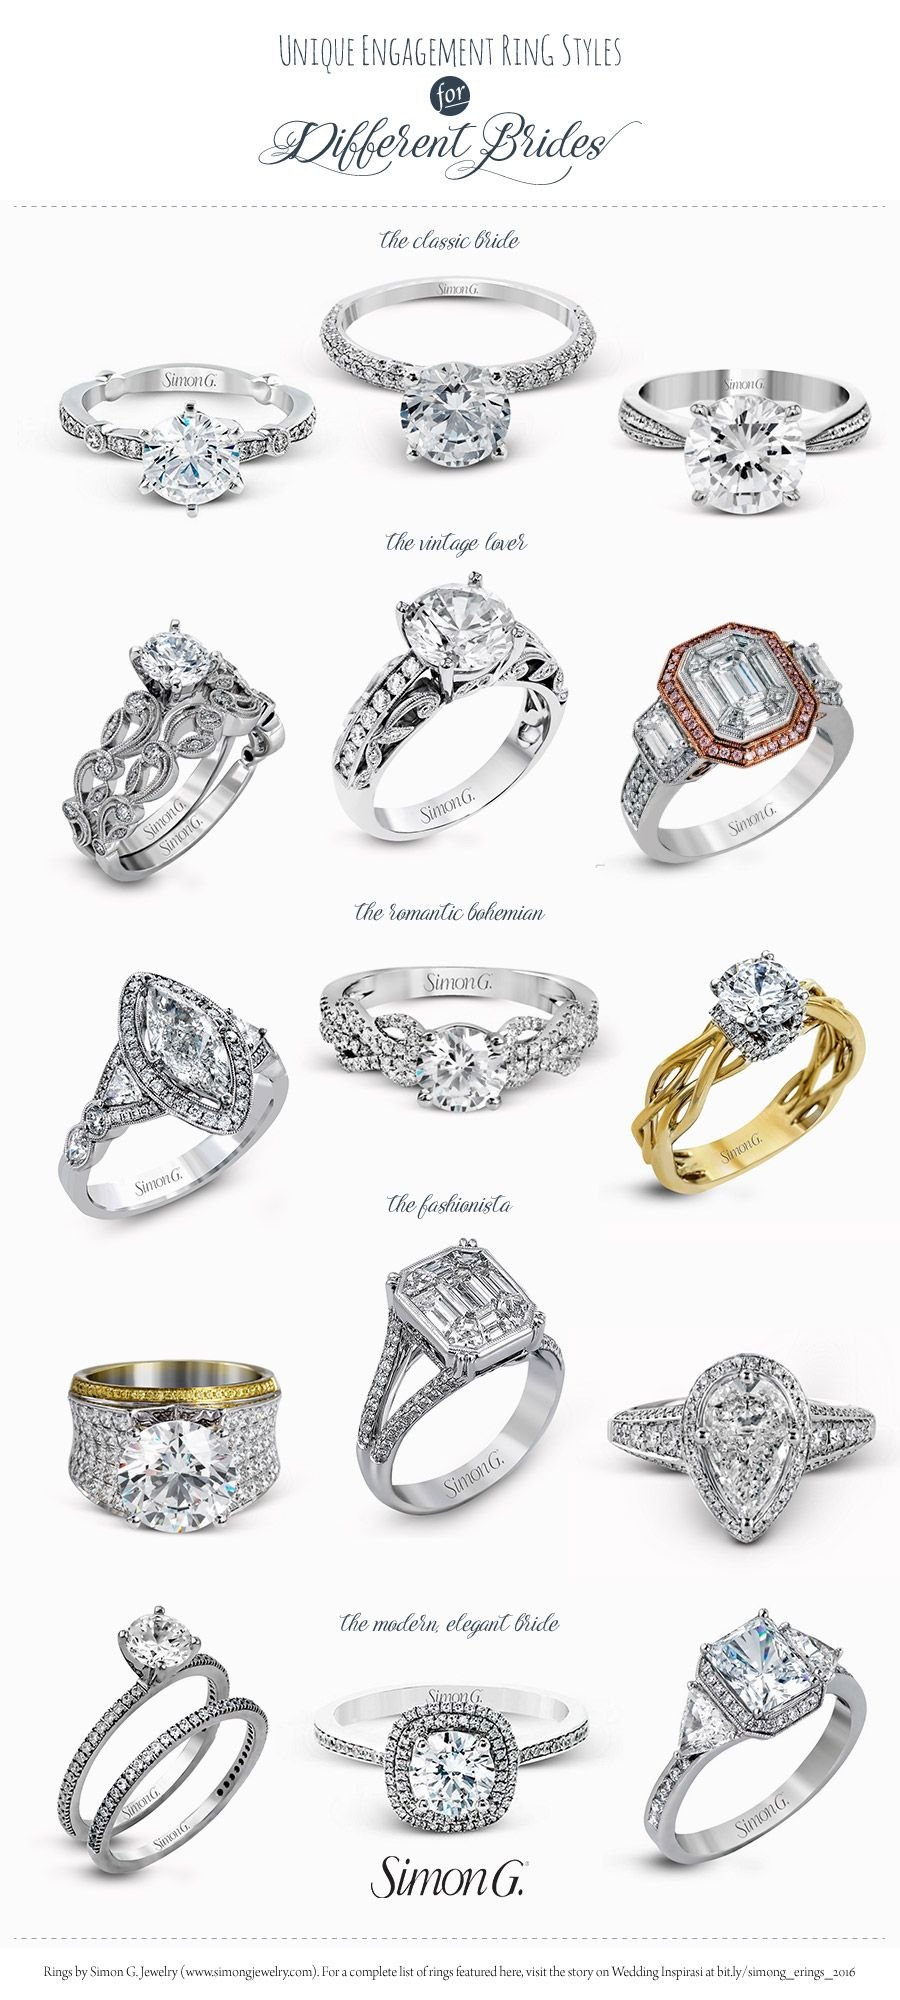 Simon  jewelry gorgeous engagement rings wedding ring styles diamond halo rose gold vintage unique designs also carat ctw  round blue  white ladies bridal rh pinterest